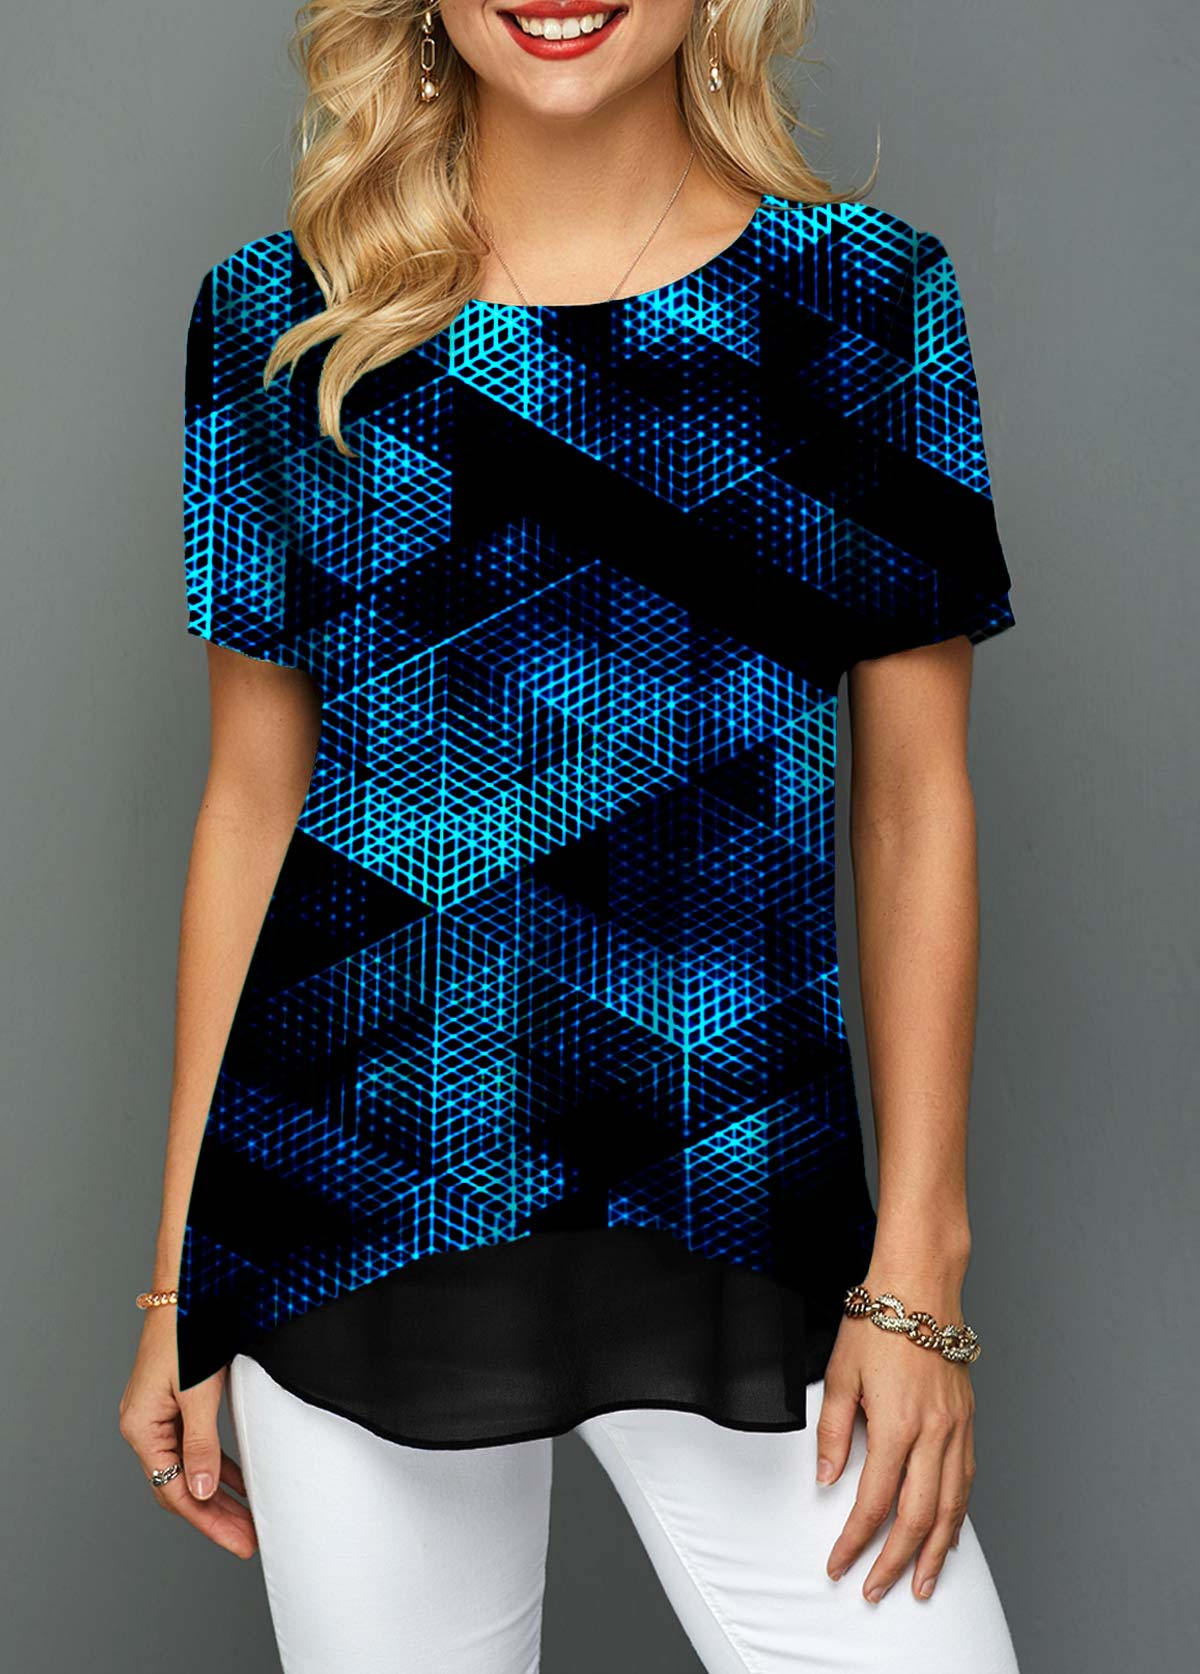 Psychedelic Print Round Neck Short Sleeve T Shirt